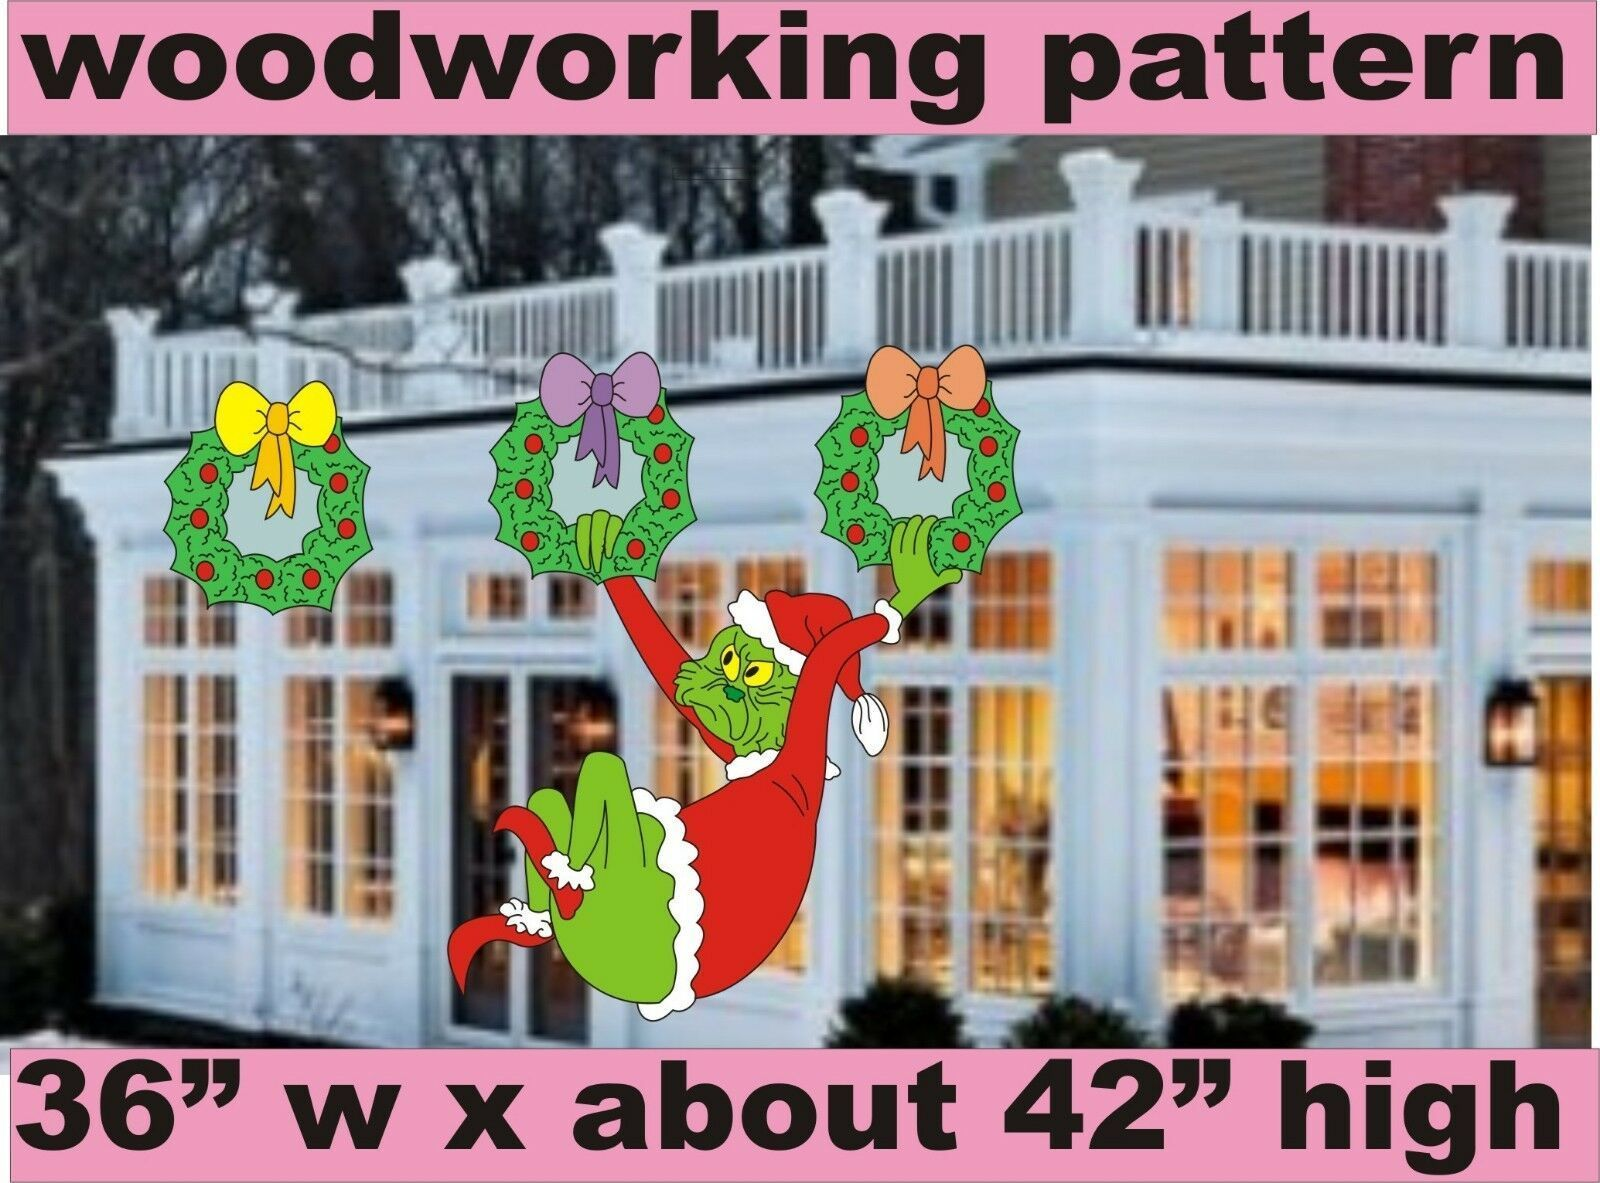 WHOVILLE GRINCH HANGING FROM WREATHS WOODWORKING PATTERN, plan yard art   #Art #grinch #hanging #pattern #plan #whoville #woodworking #wreaths #yard